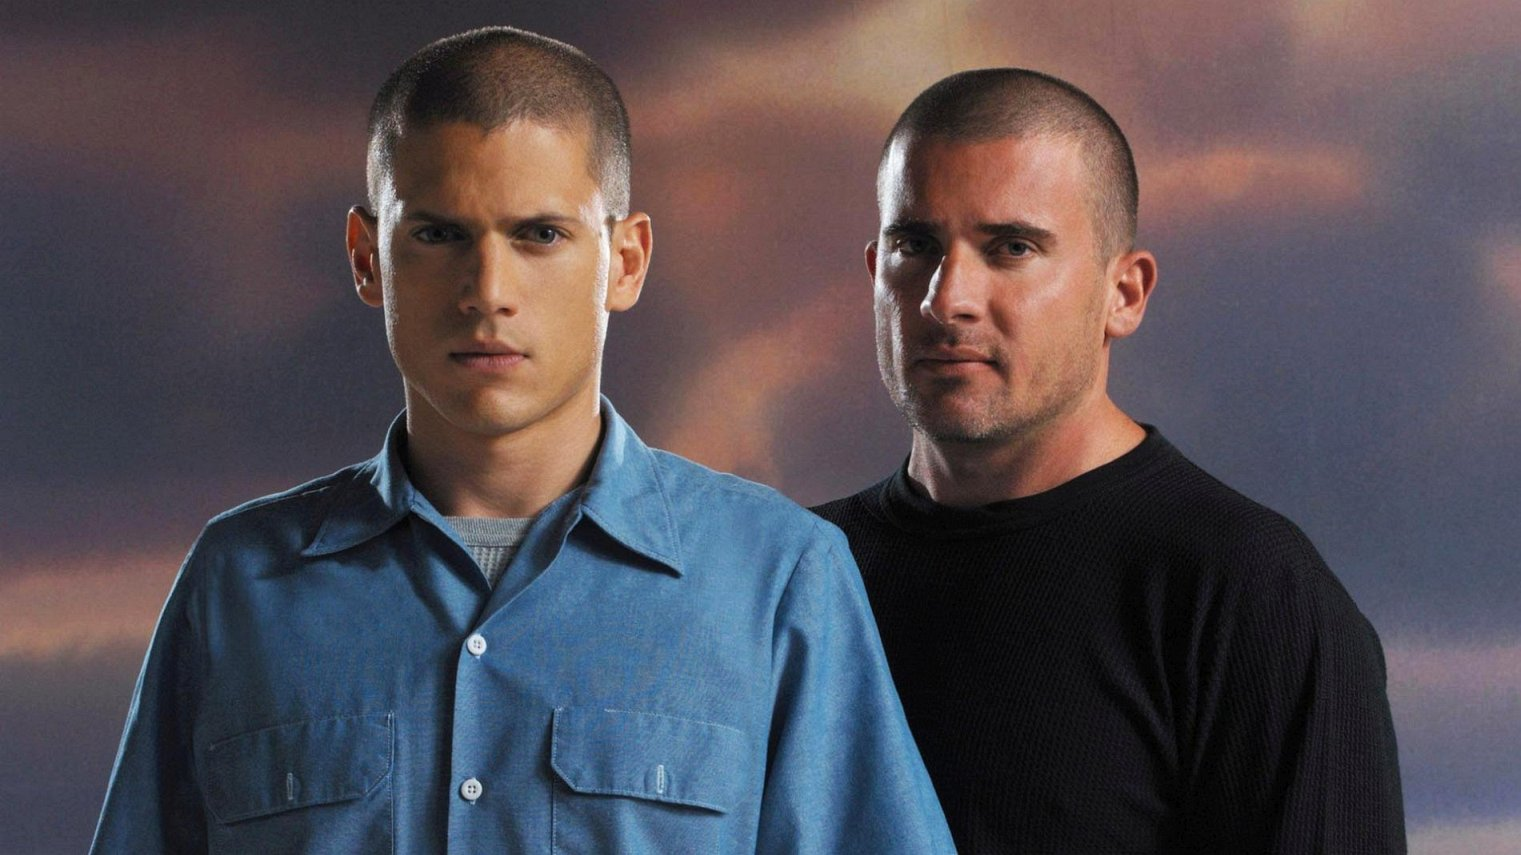 prison break season 1 online free episodes watch